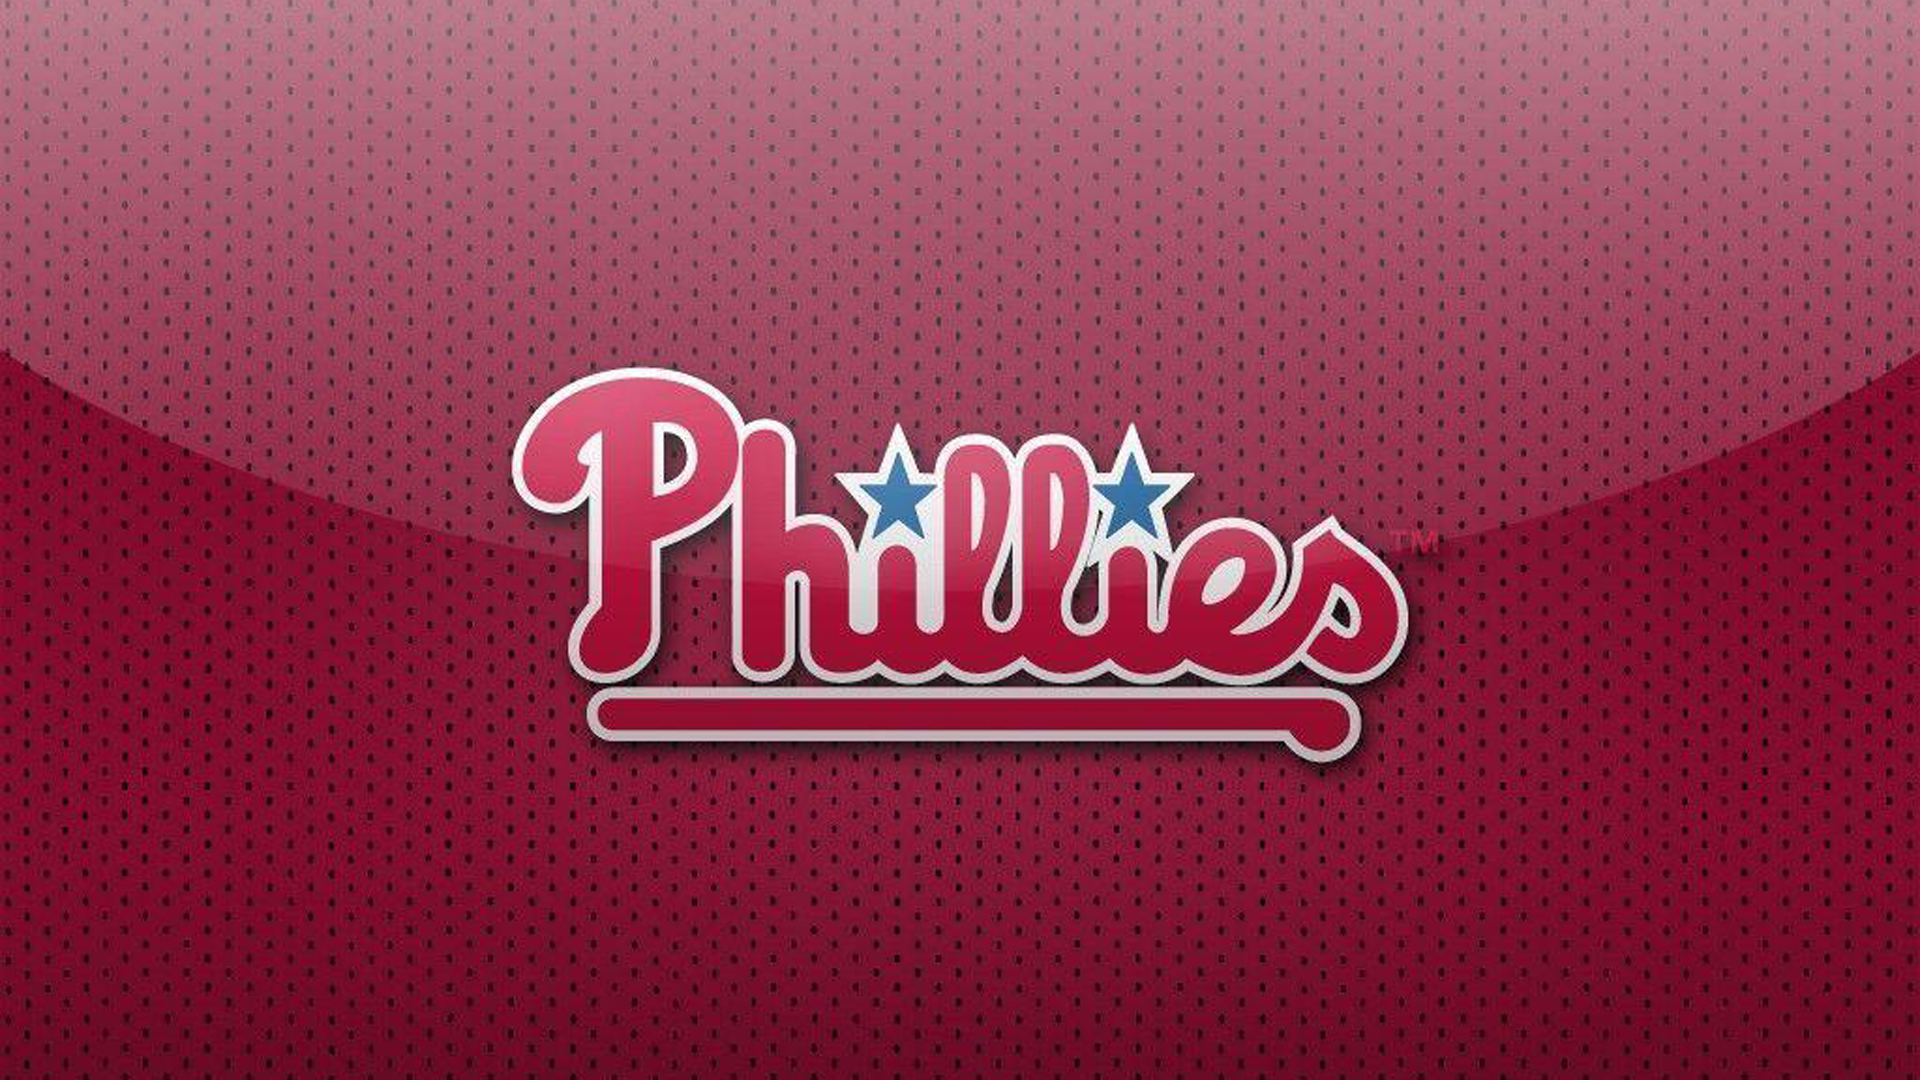 Download Phillies With Background Of Pink And Black Dots Hd Phillies